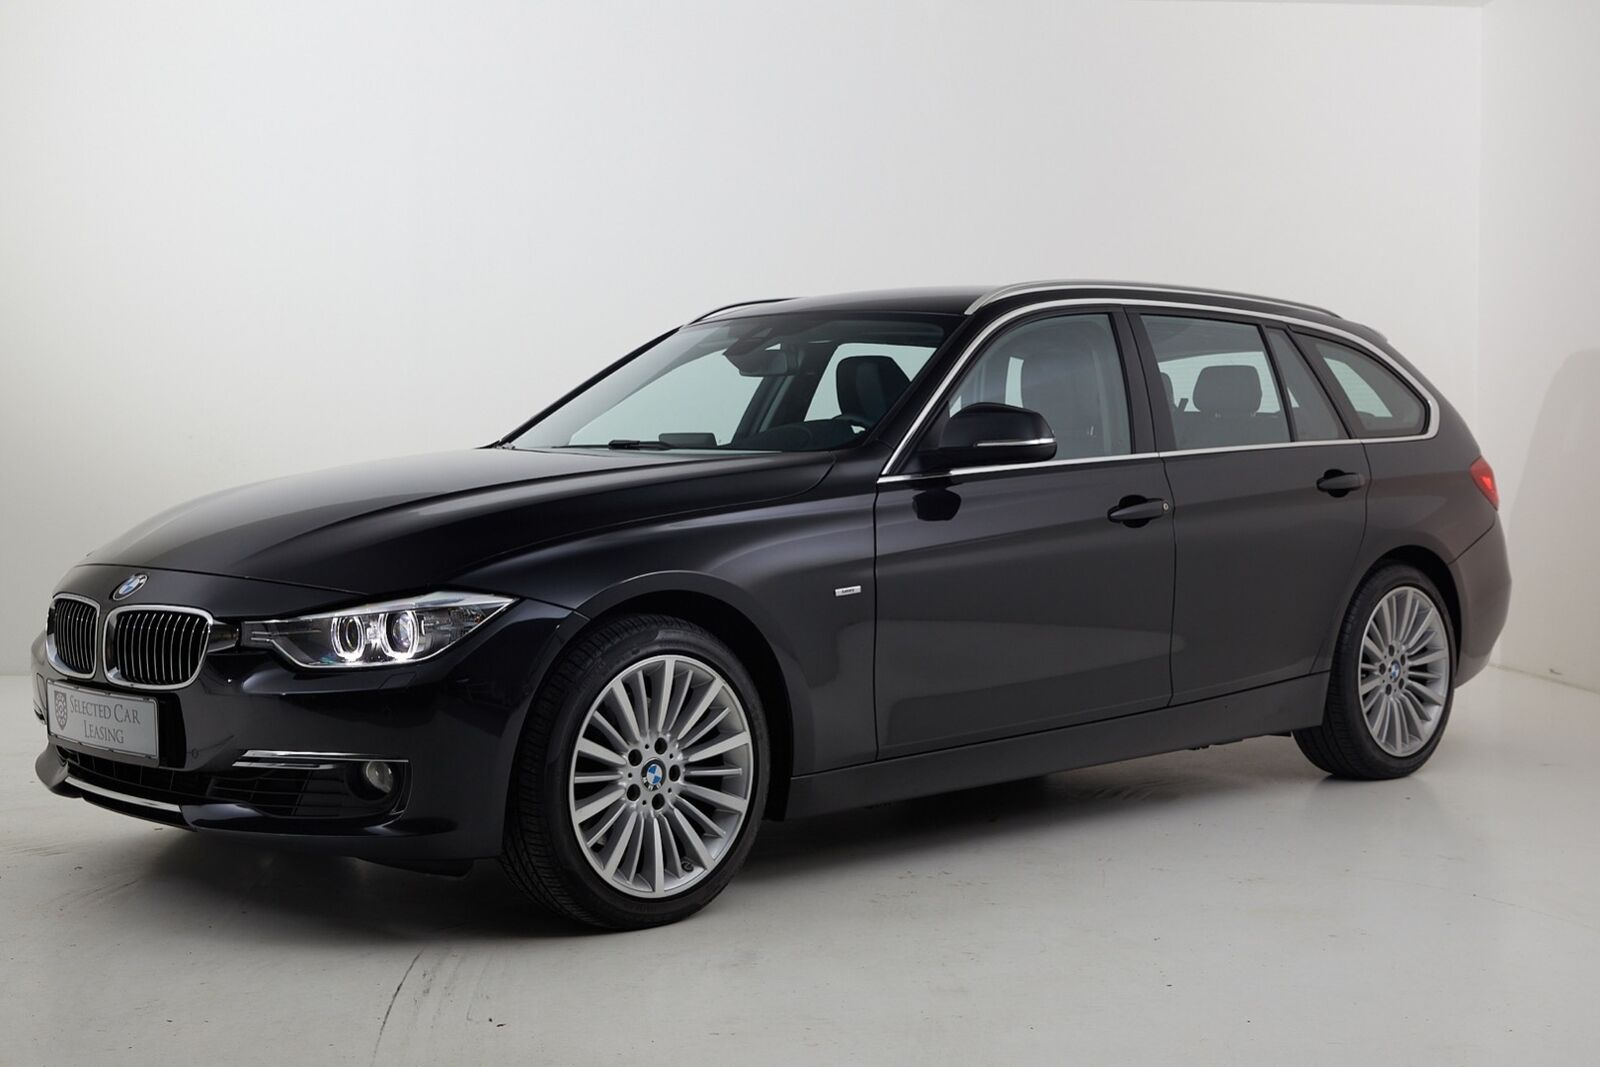 BMW 325d 2,0 Touring aut. 5d